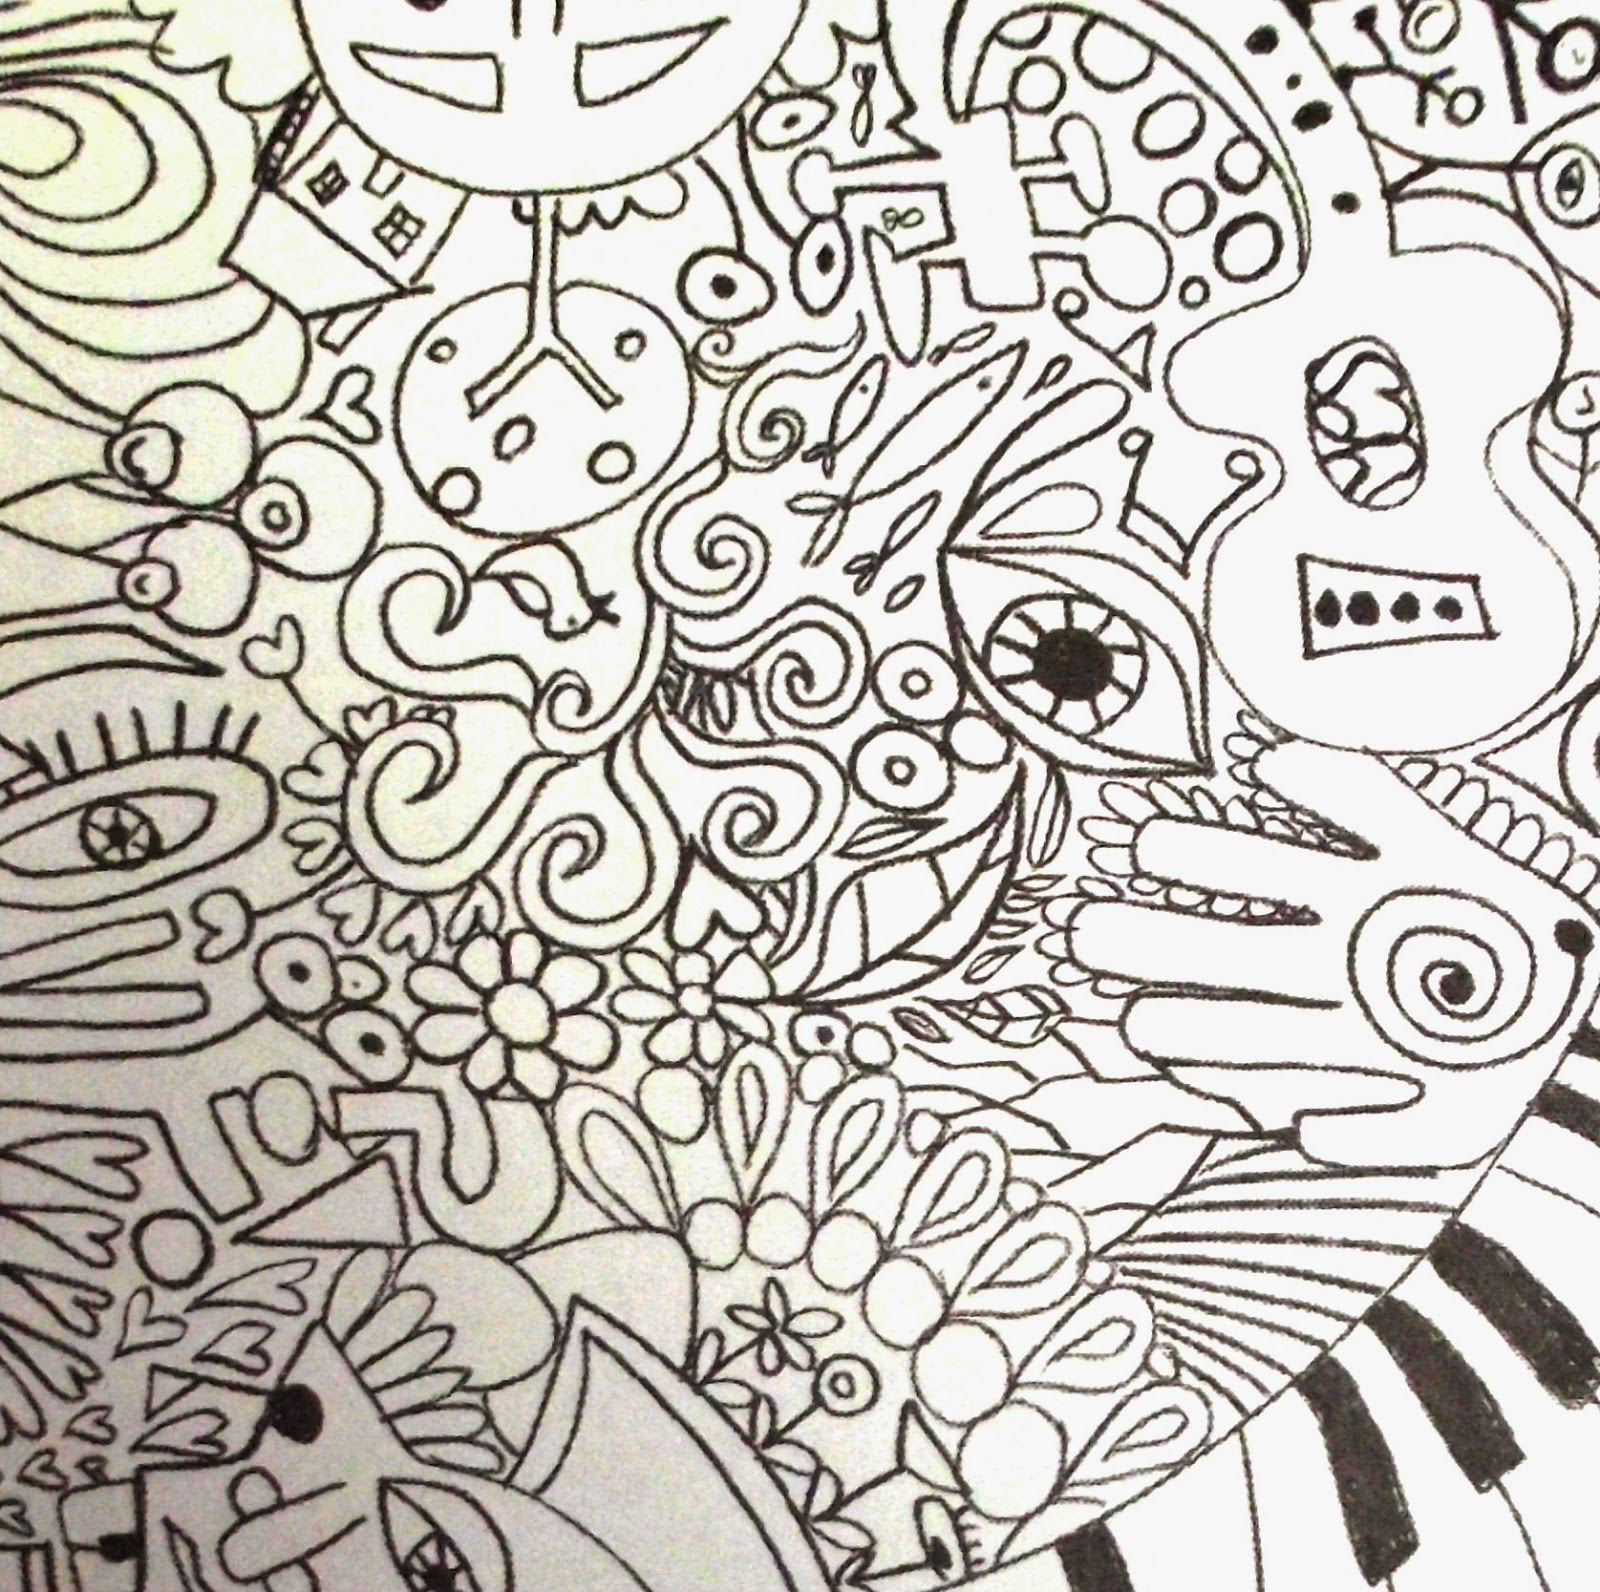 Abstract hard coloring pages 2015 paint images teenagers, hard coloring pages